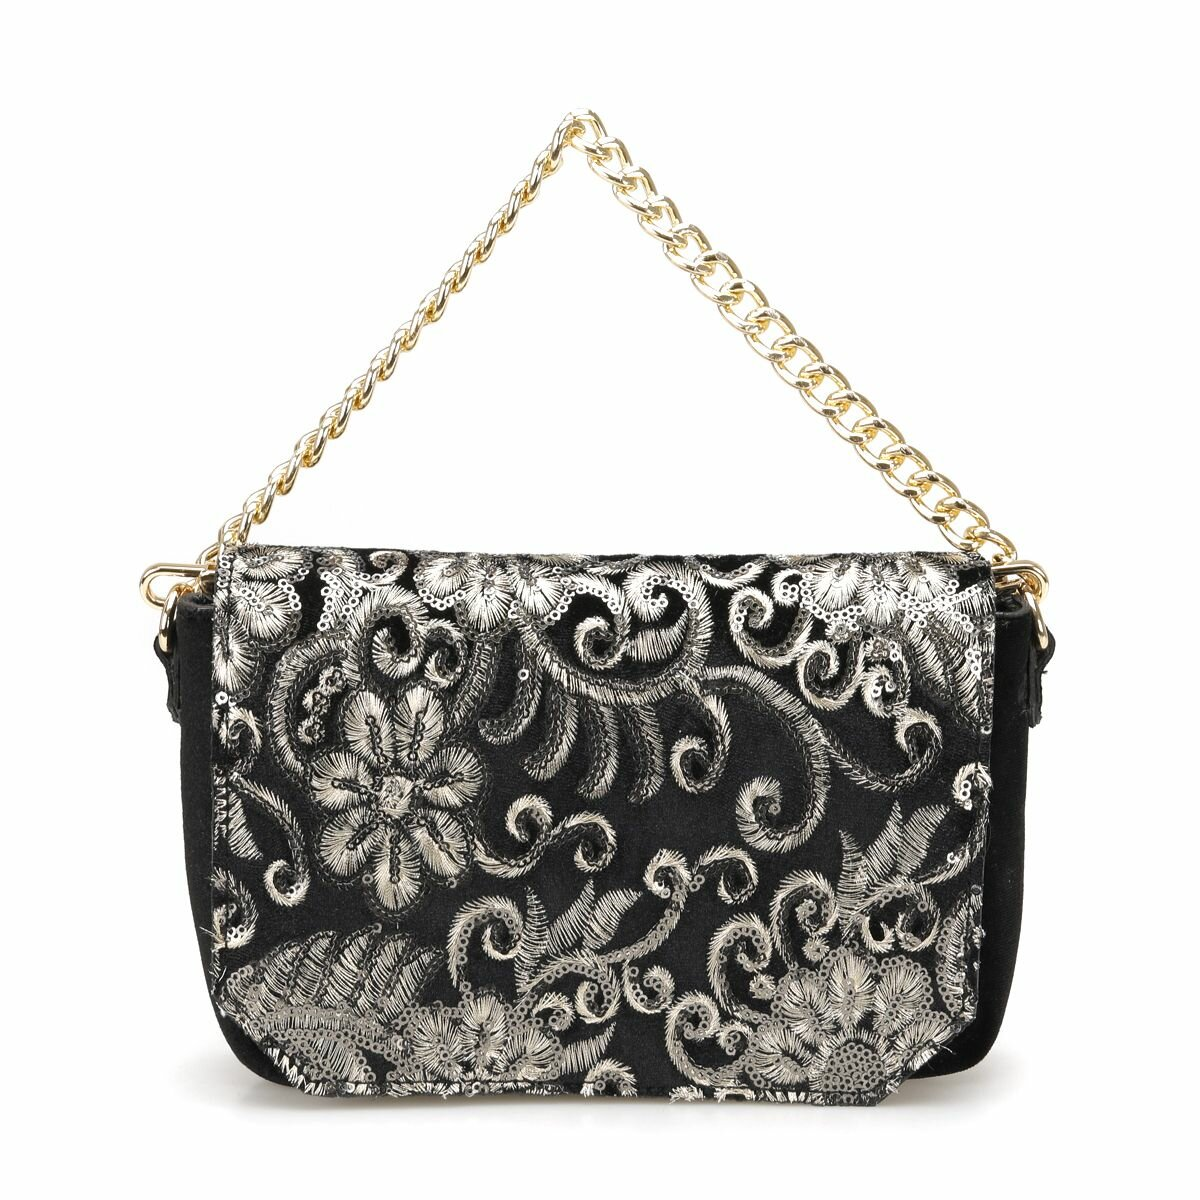 FLO PR18AW011 Black Women Messenger Bag BUTIGO